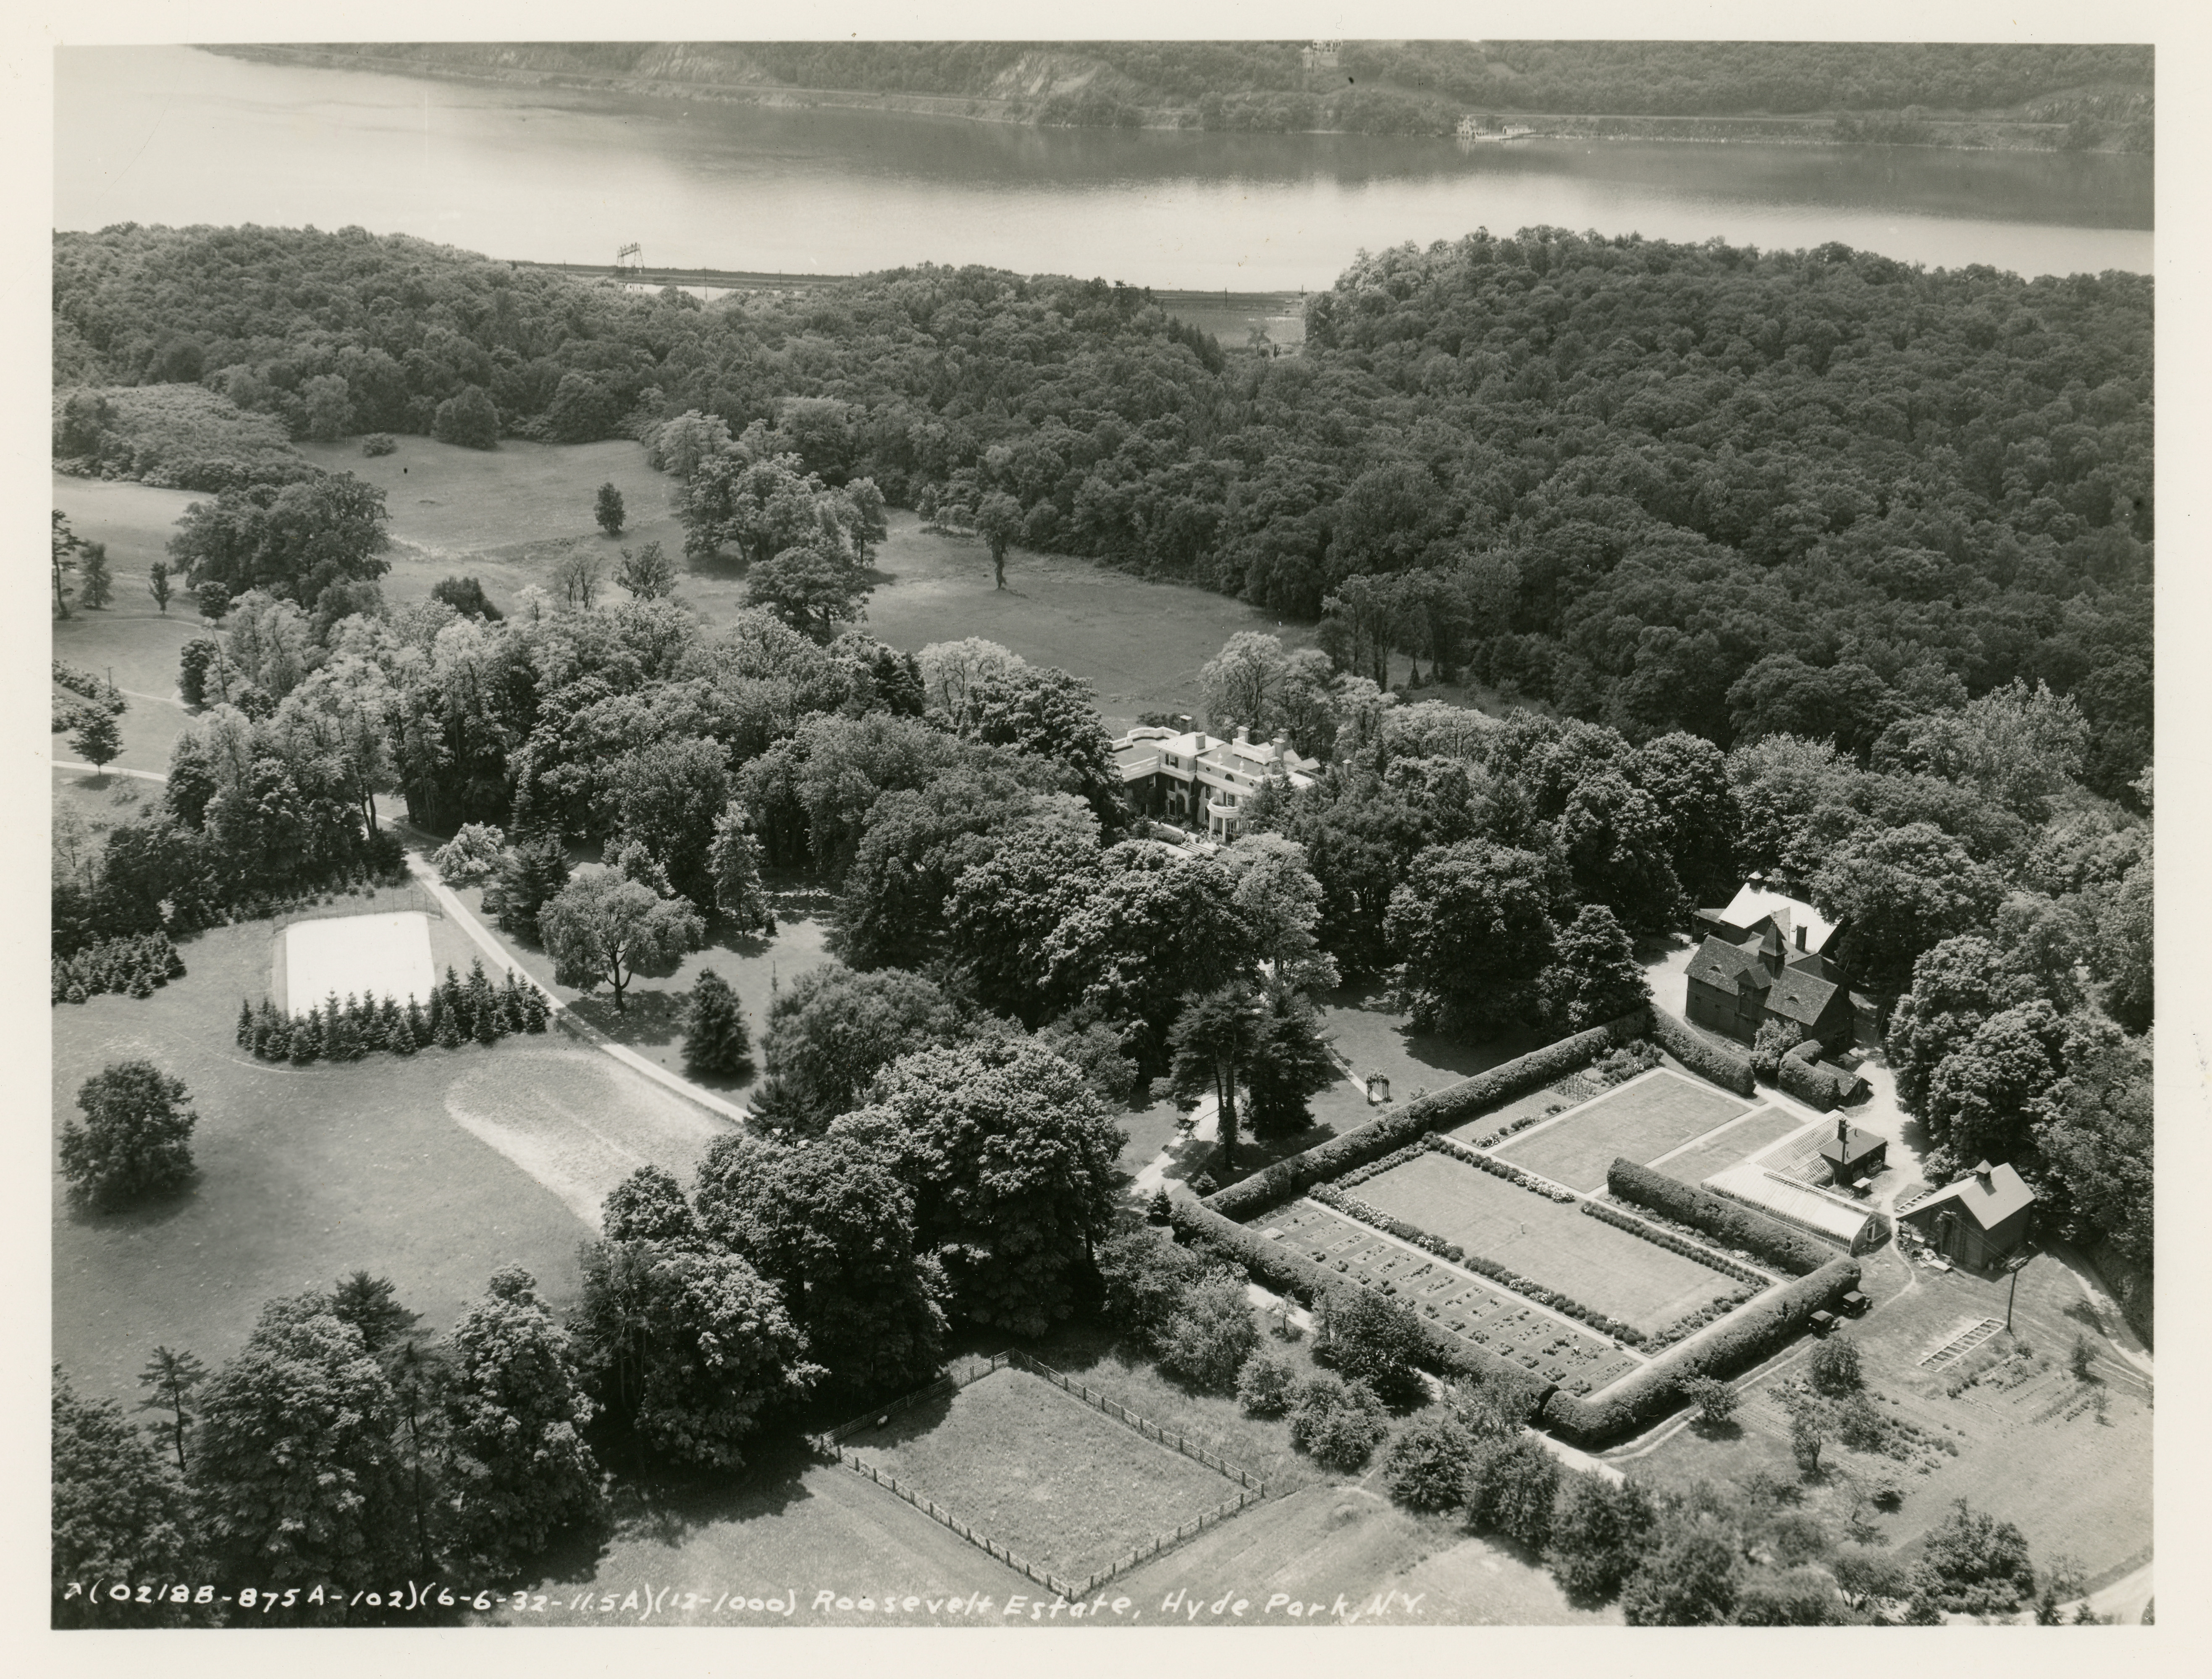 Aerial view of the grounds of Springwood, the Roosevelt family estate in Hyde Park, New York.